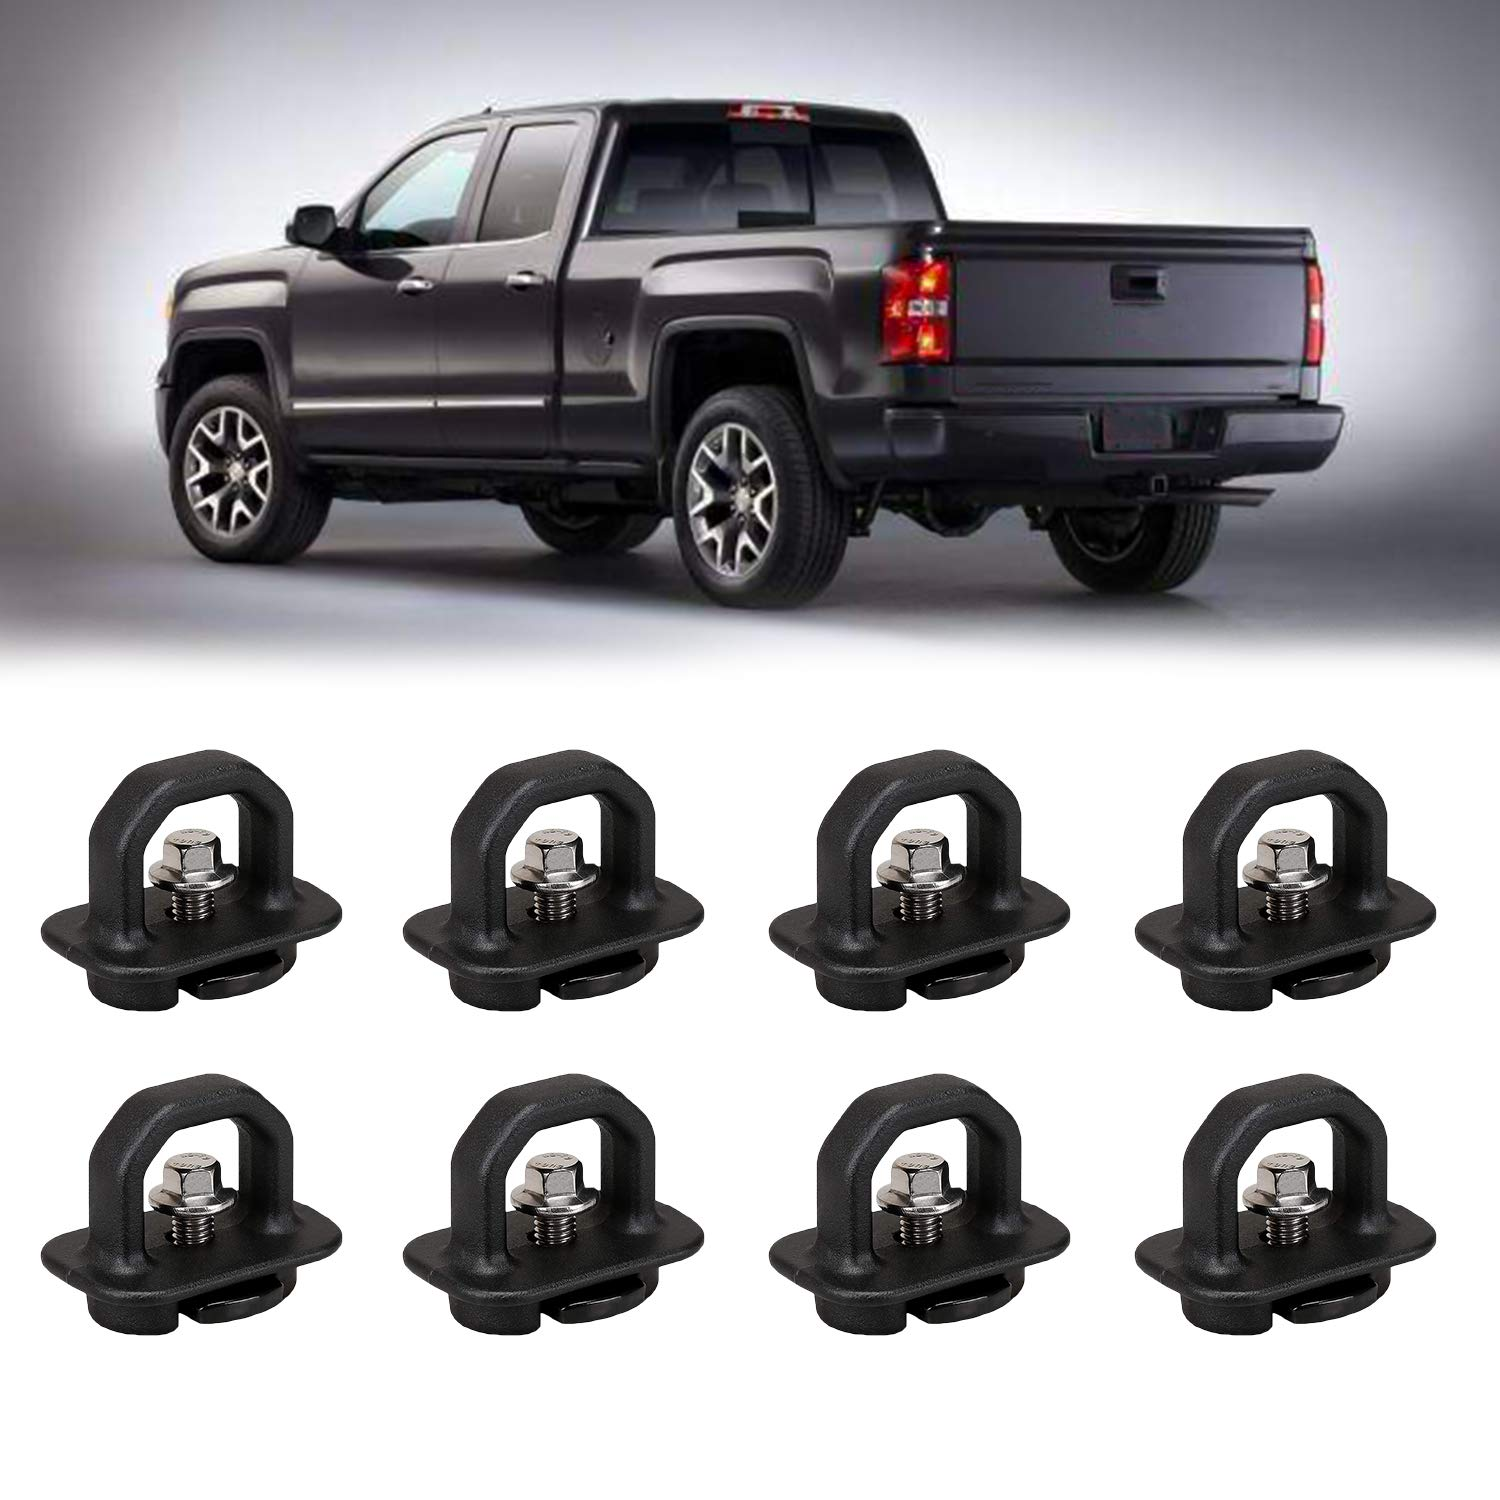 8 Pcs Tie Down Anchor Truck Bed Anchors, Side Wall Hook Rings for 07-18 Chevy Silverado/GMC Sierra,15-18 Chevy Colorado/GMC Canyon Pickup (4 Pack-Truck Bed Tie Downs Pickup Anchors)